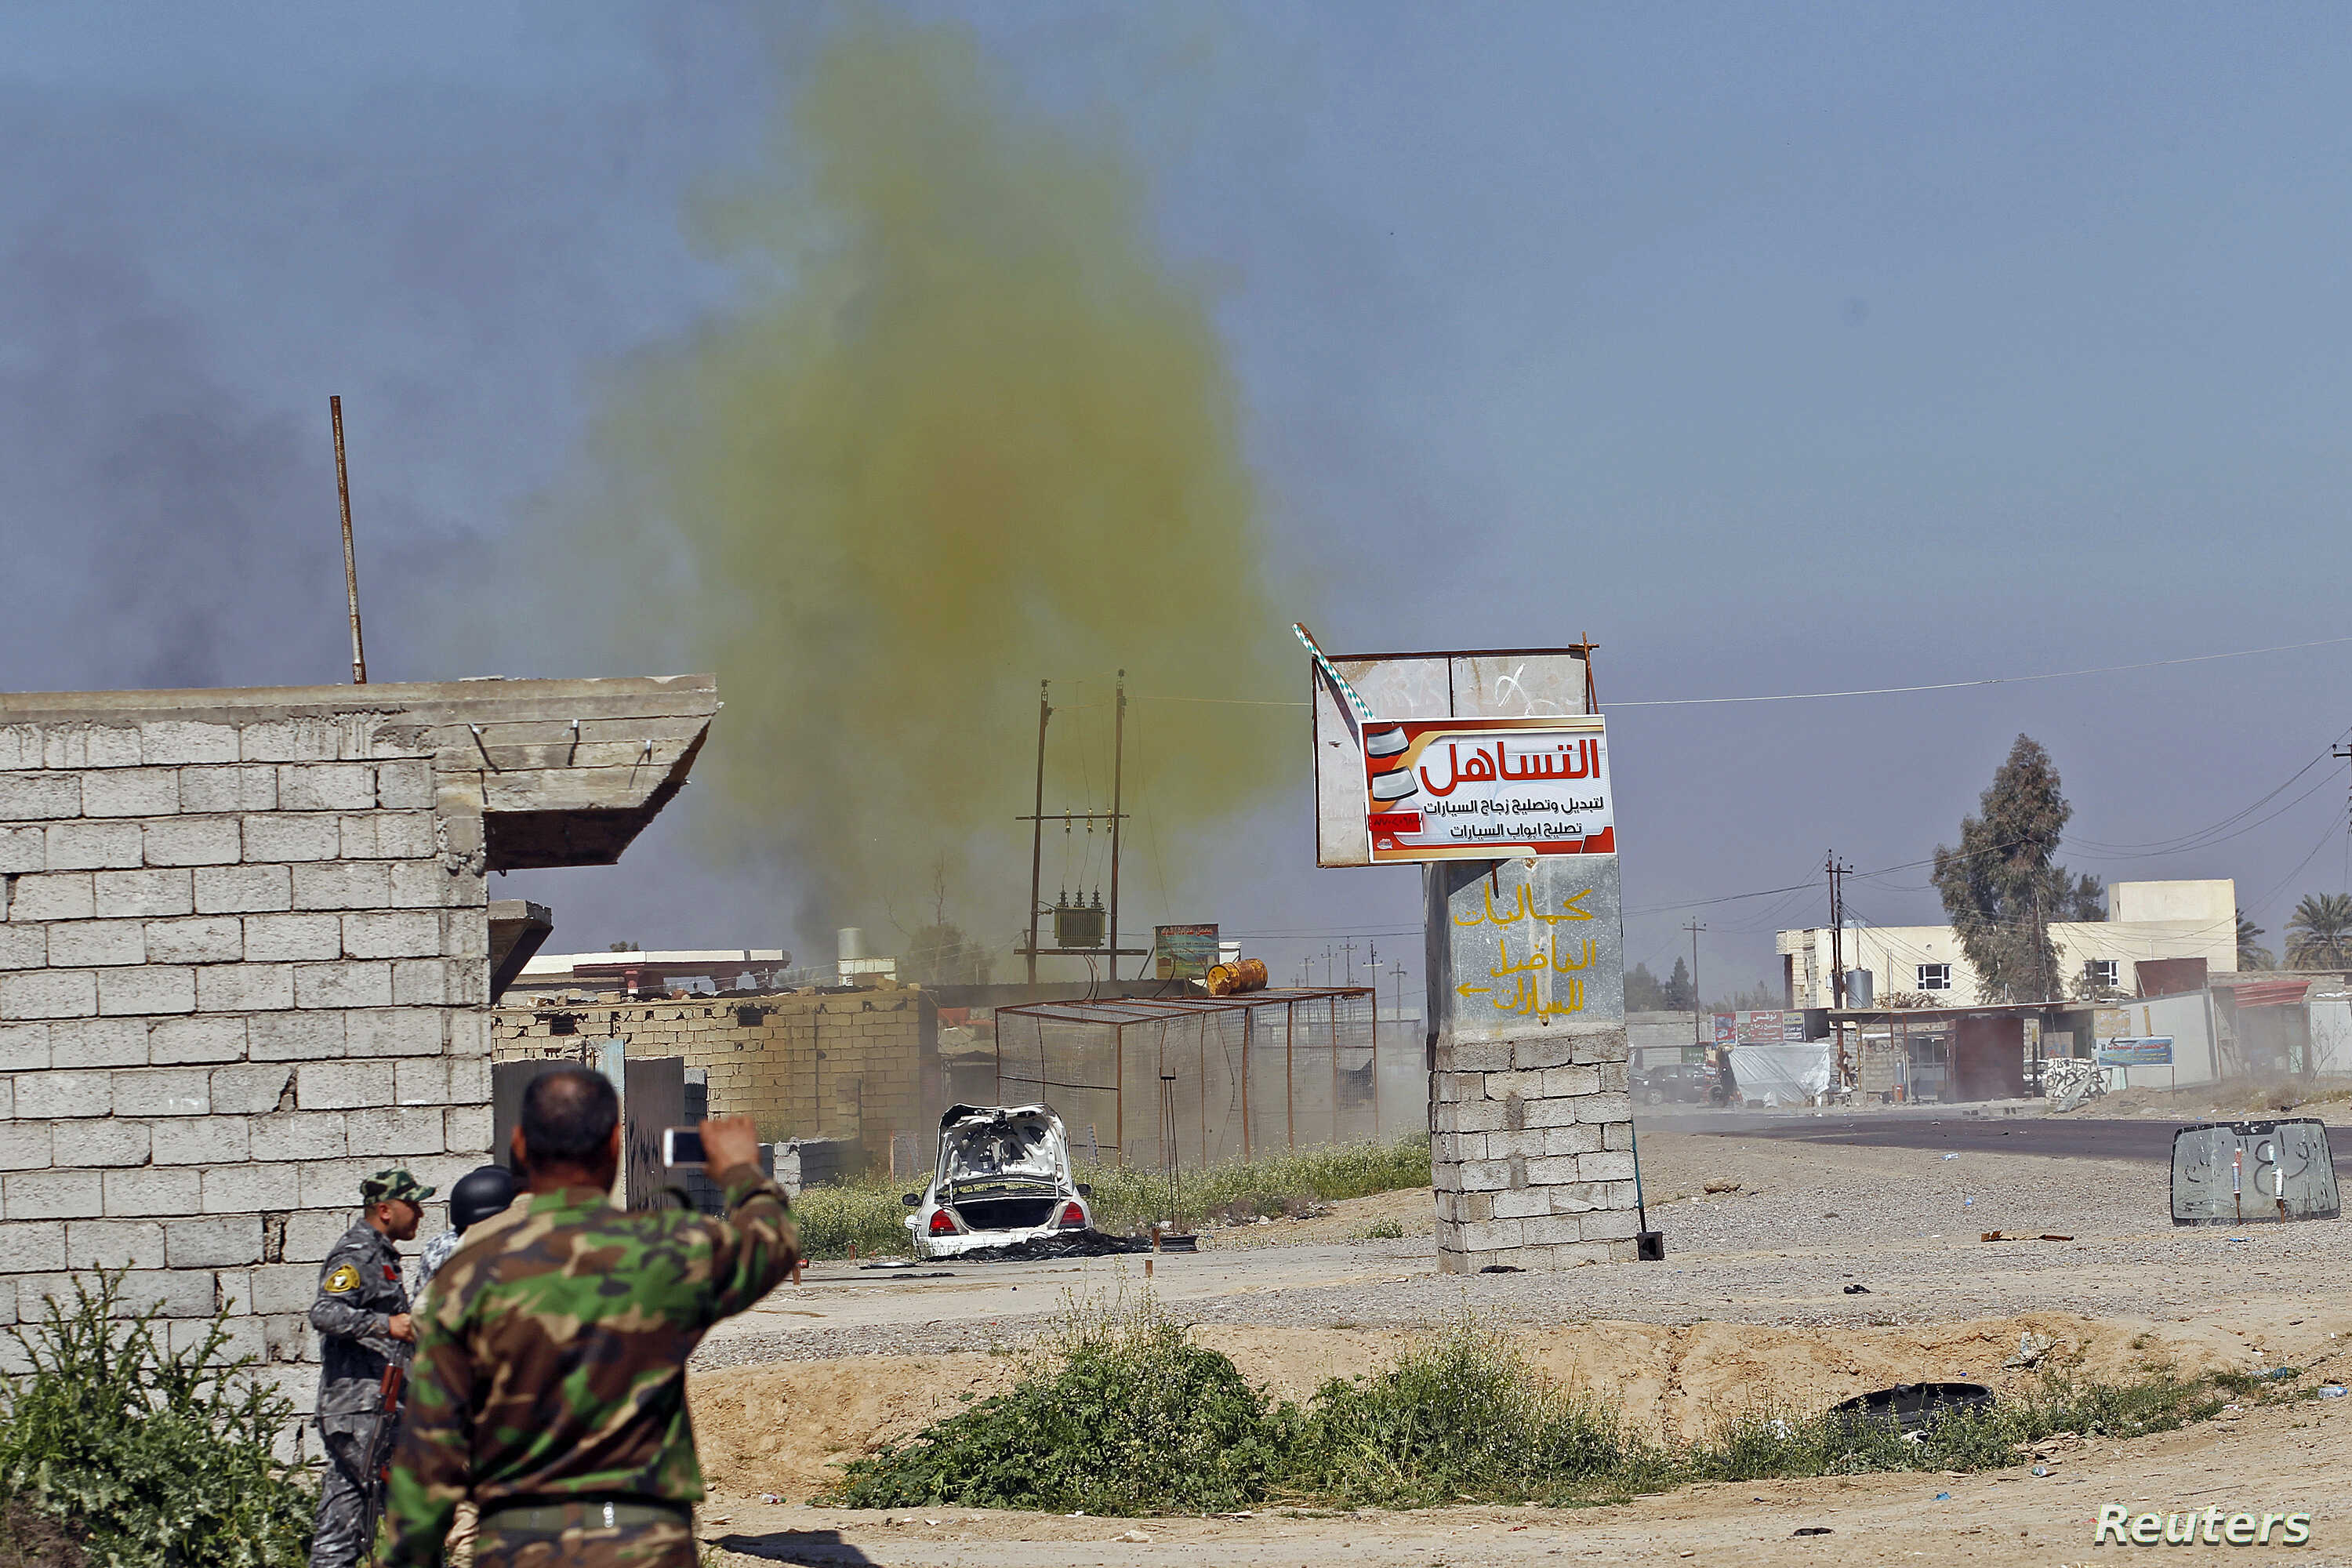 File - A chlorine-tinged cloud of smoke rises into the air from an alleged Islamic State bomb that was detonated by Iraqi army and Shi'ite fighters, in the town of al-Alam in Salahuddin province, March 10, 2015.